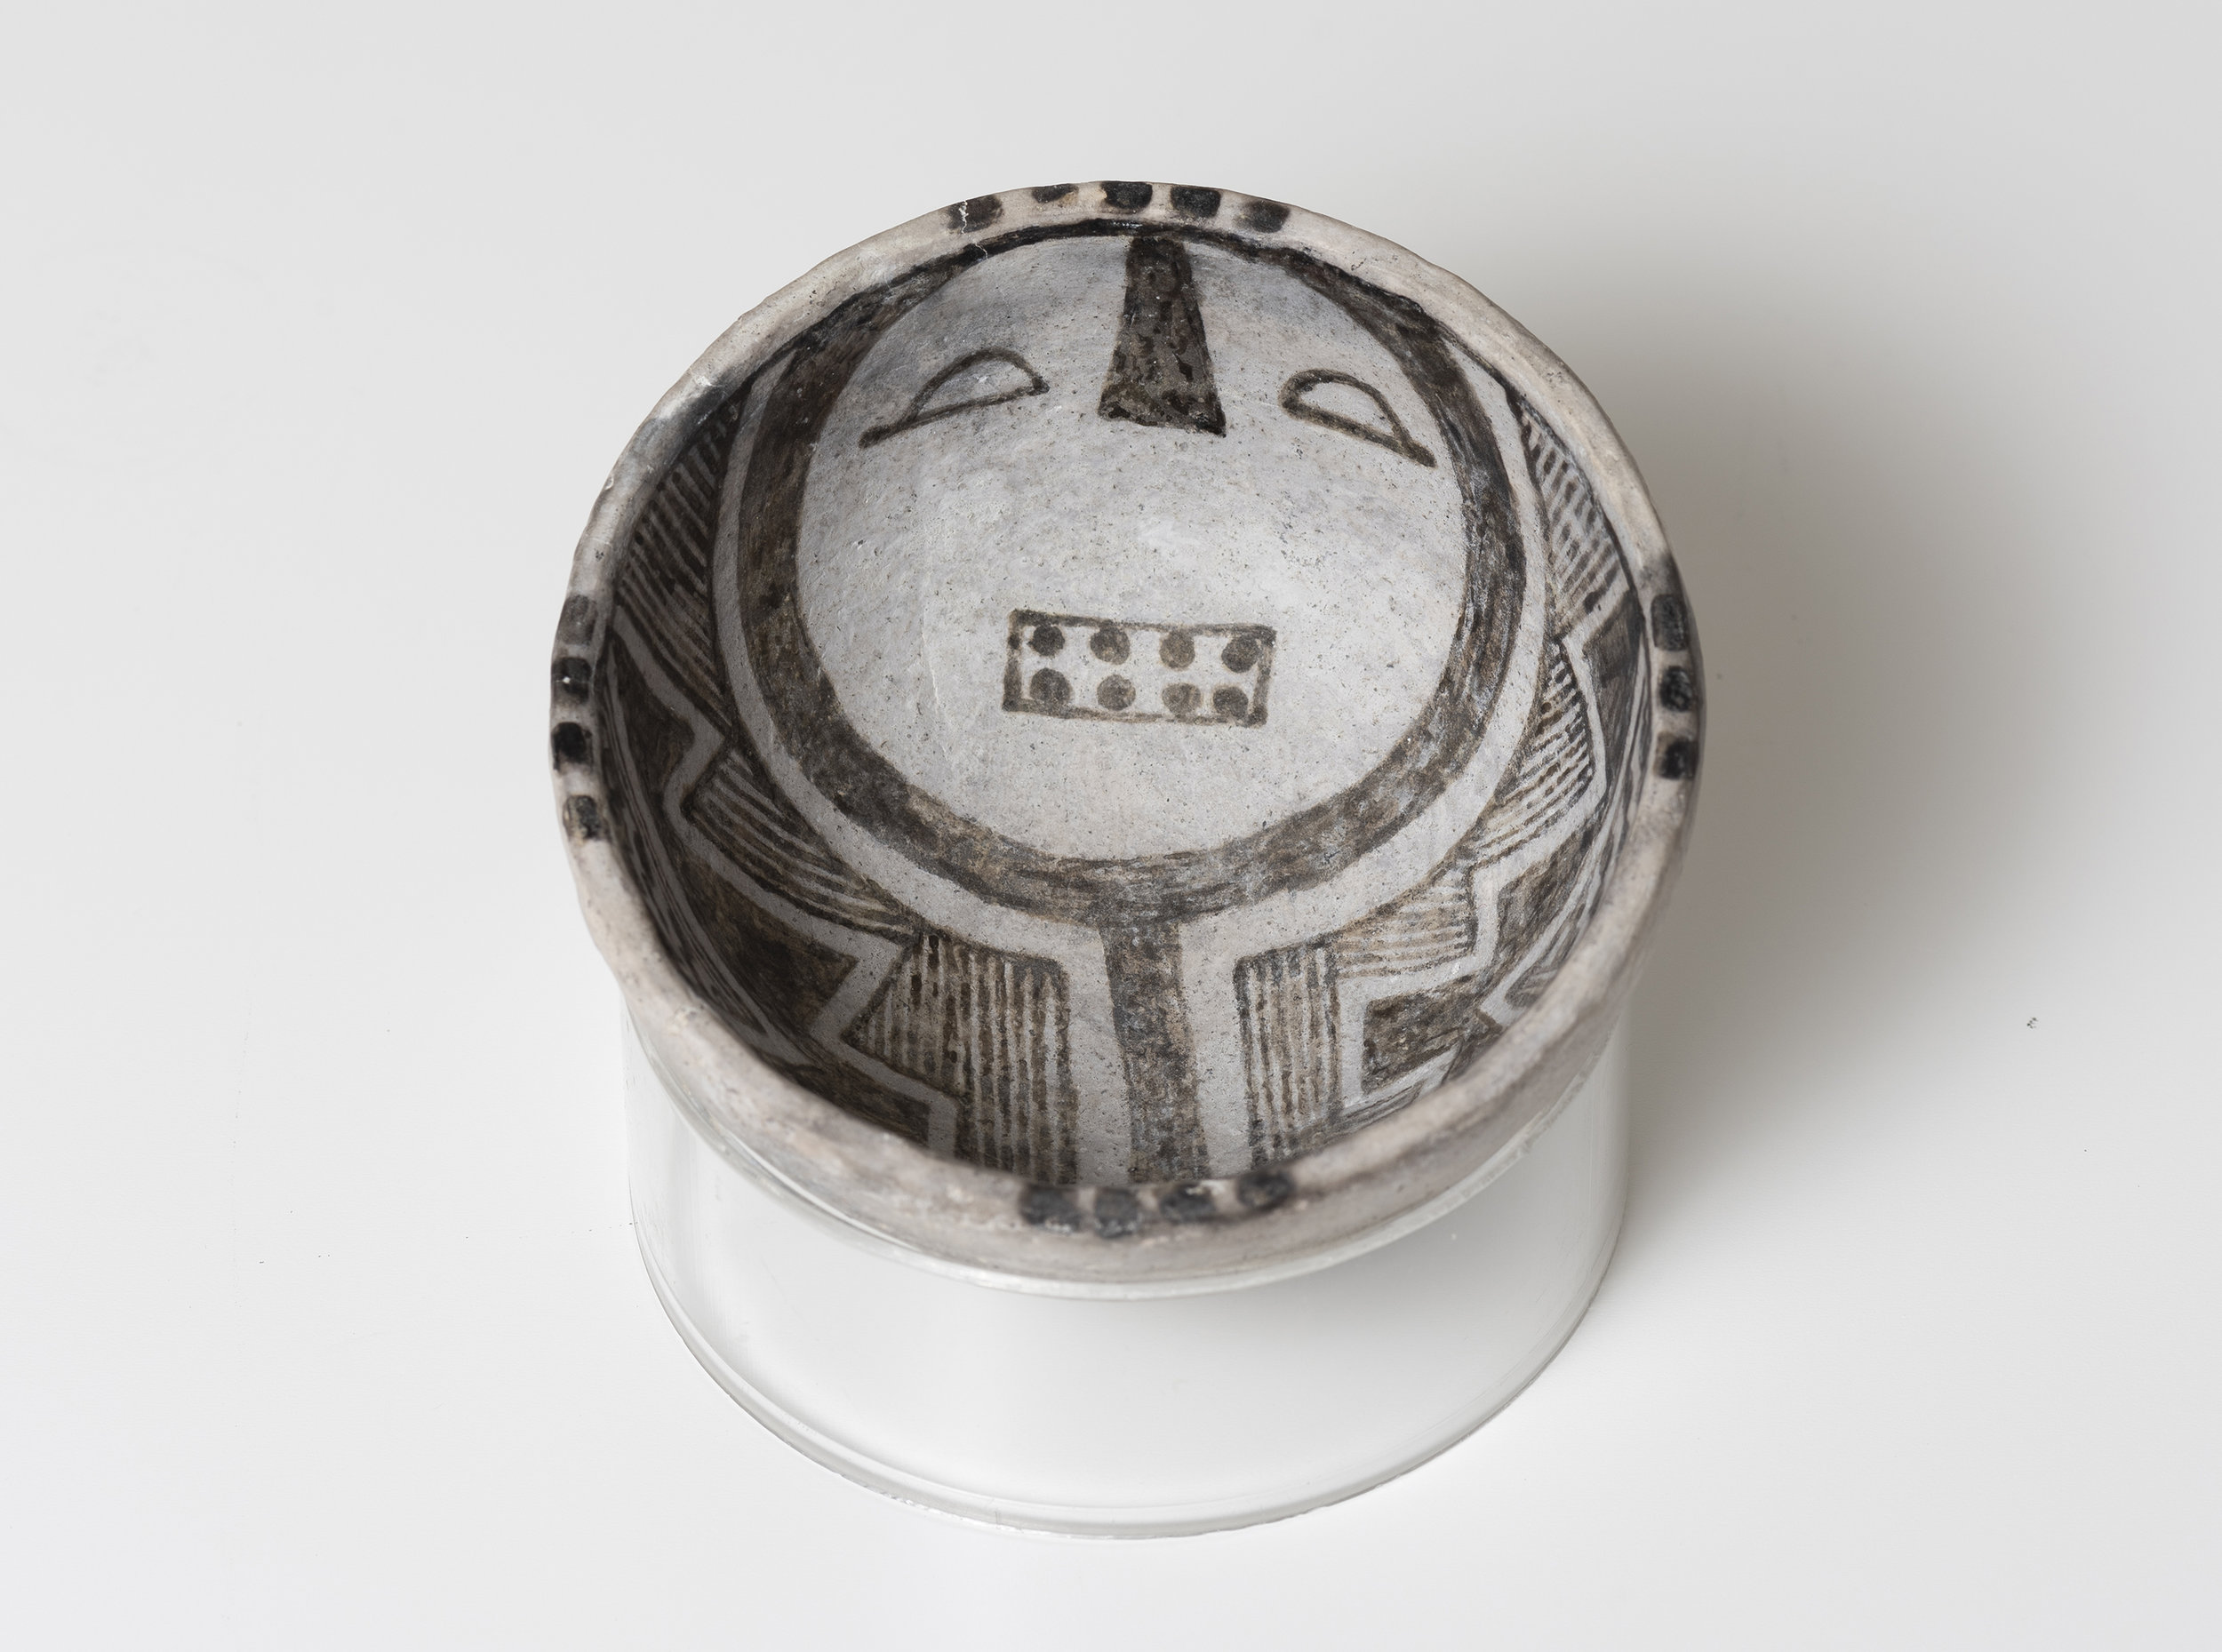 Snowflake Black-on-White  Humanoid face   c. 1175 - 1325 CE Painted ceramic 3.75 inches diameter, 2 inches depth